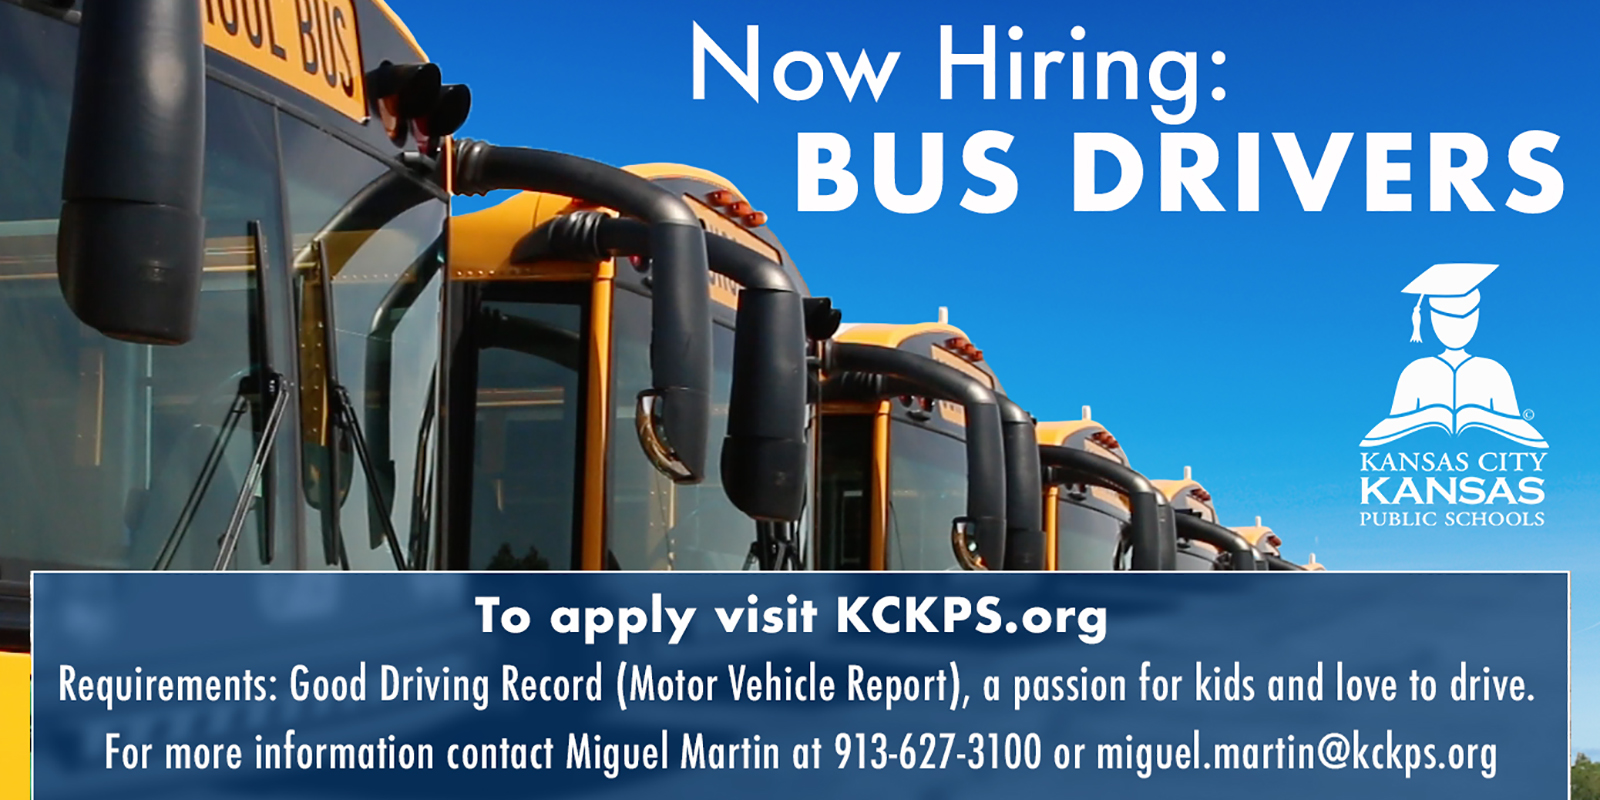 Now hiring Bus Drivers - To apply, visit KCKPS.org Requirements: Good driving record, passion for kids and love to drive.